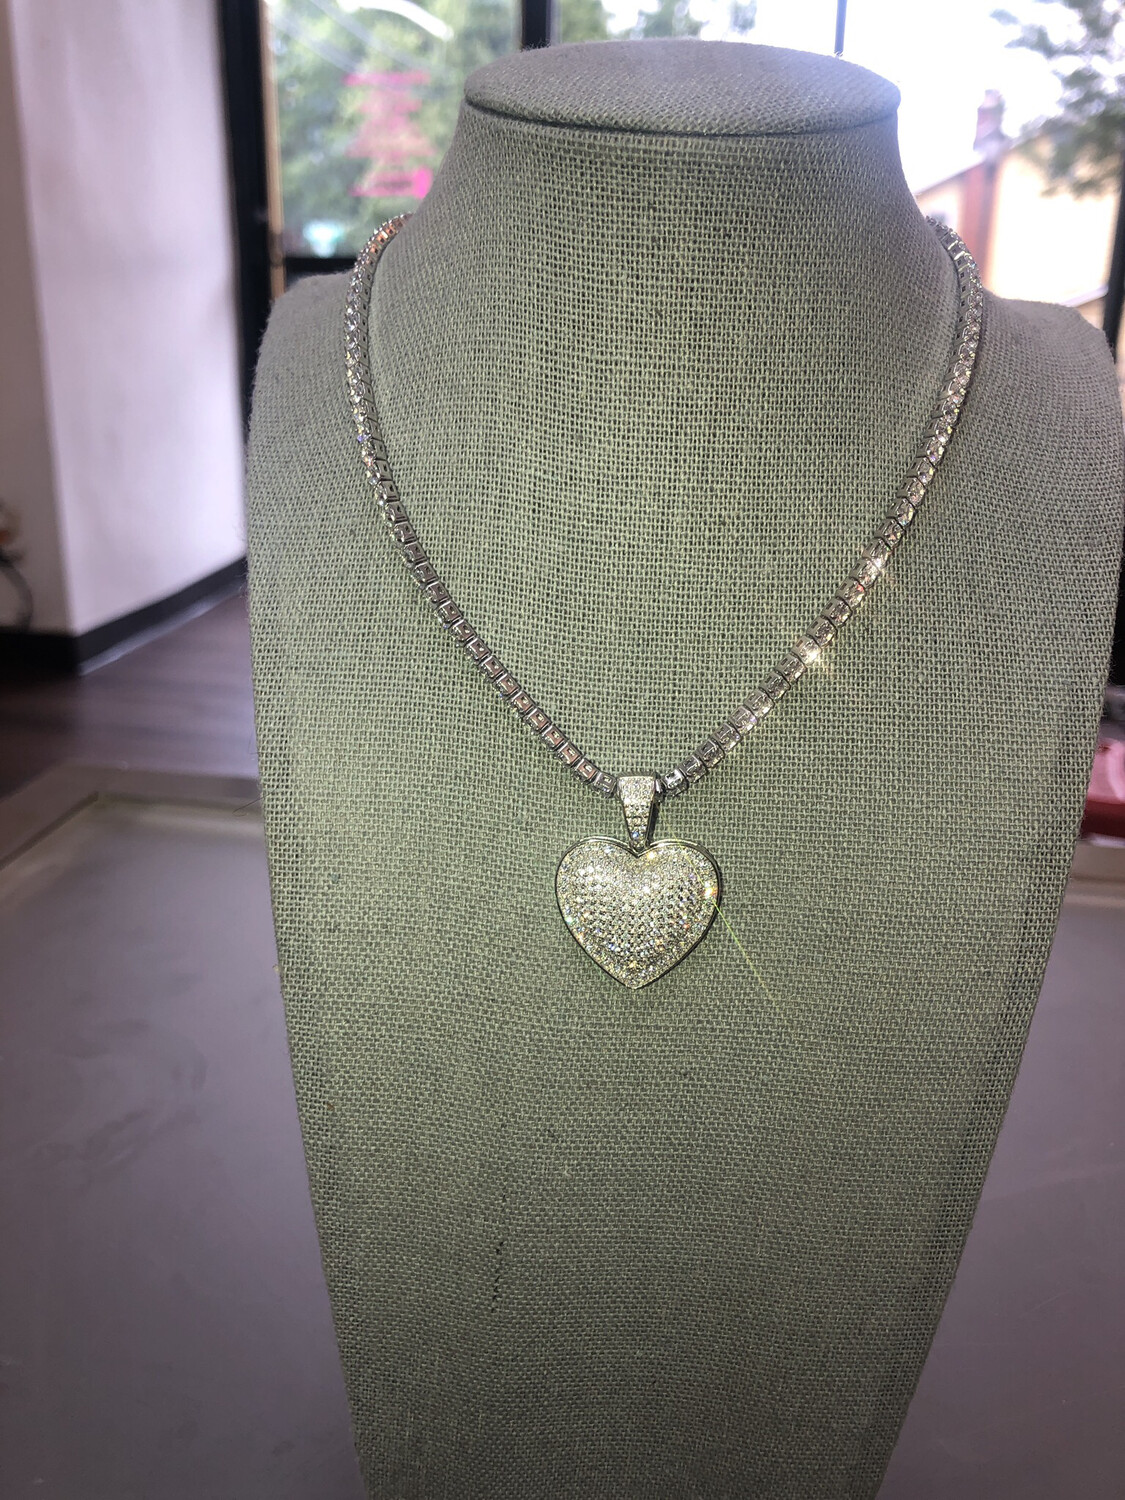 Heart Tennis Necklace